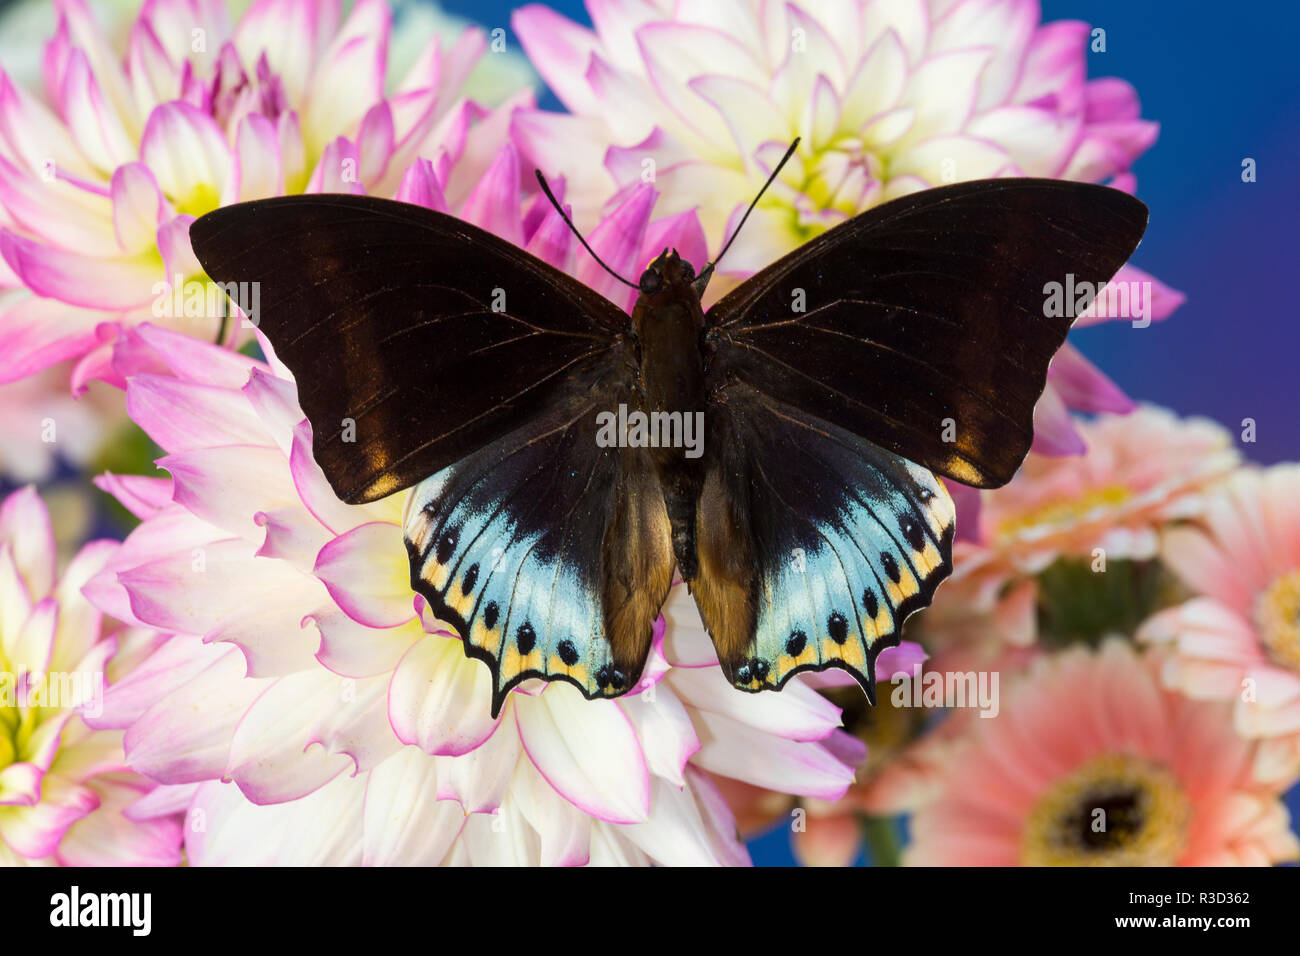 Tropical butterfly Charaxes eurialus from Indonesia on Dahlia Flowers - Stock Image